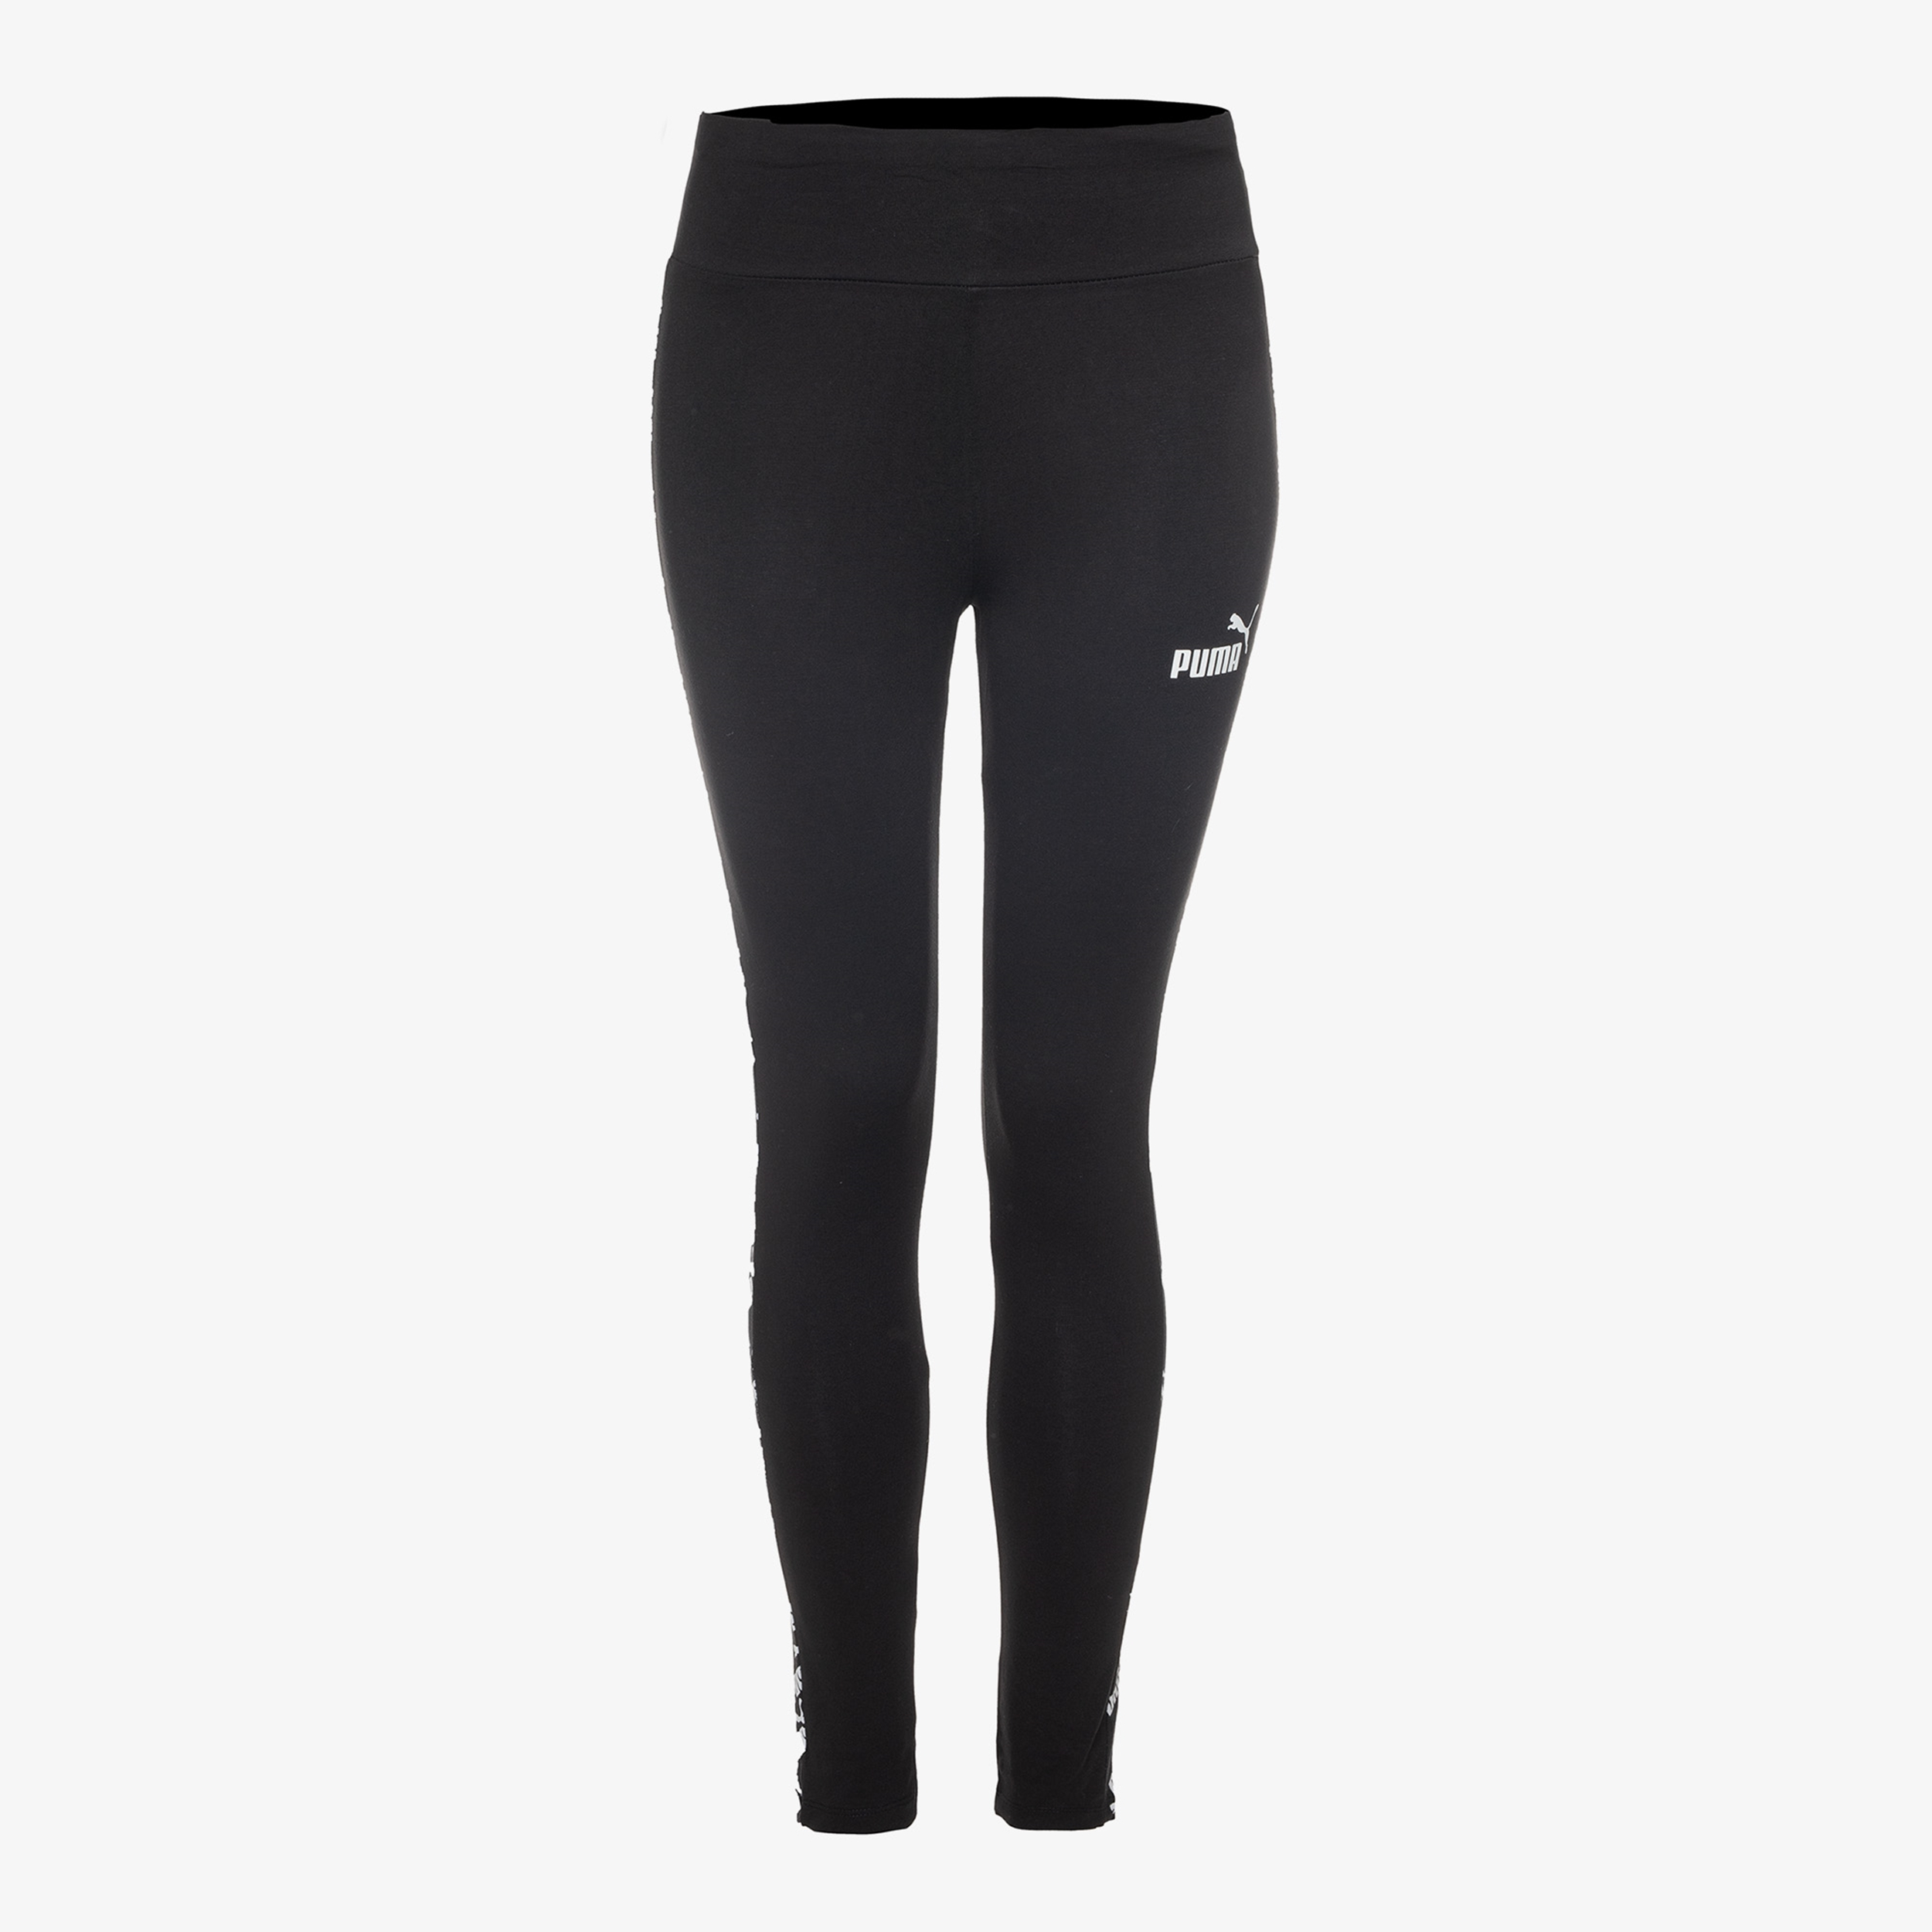 Puma Amplified dames sportlegging | Scapino.nl